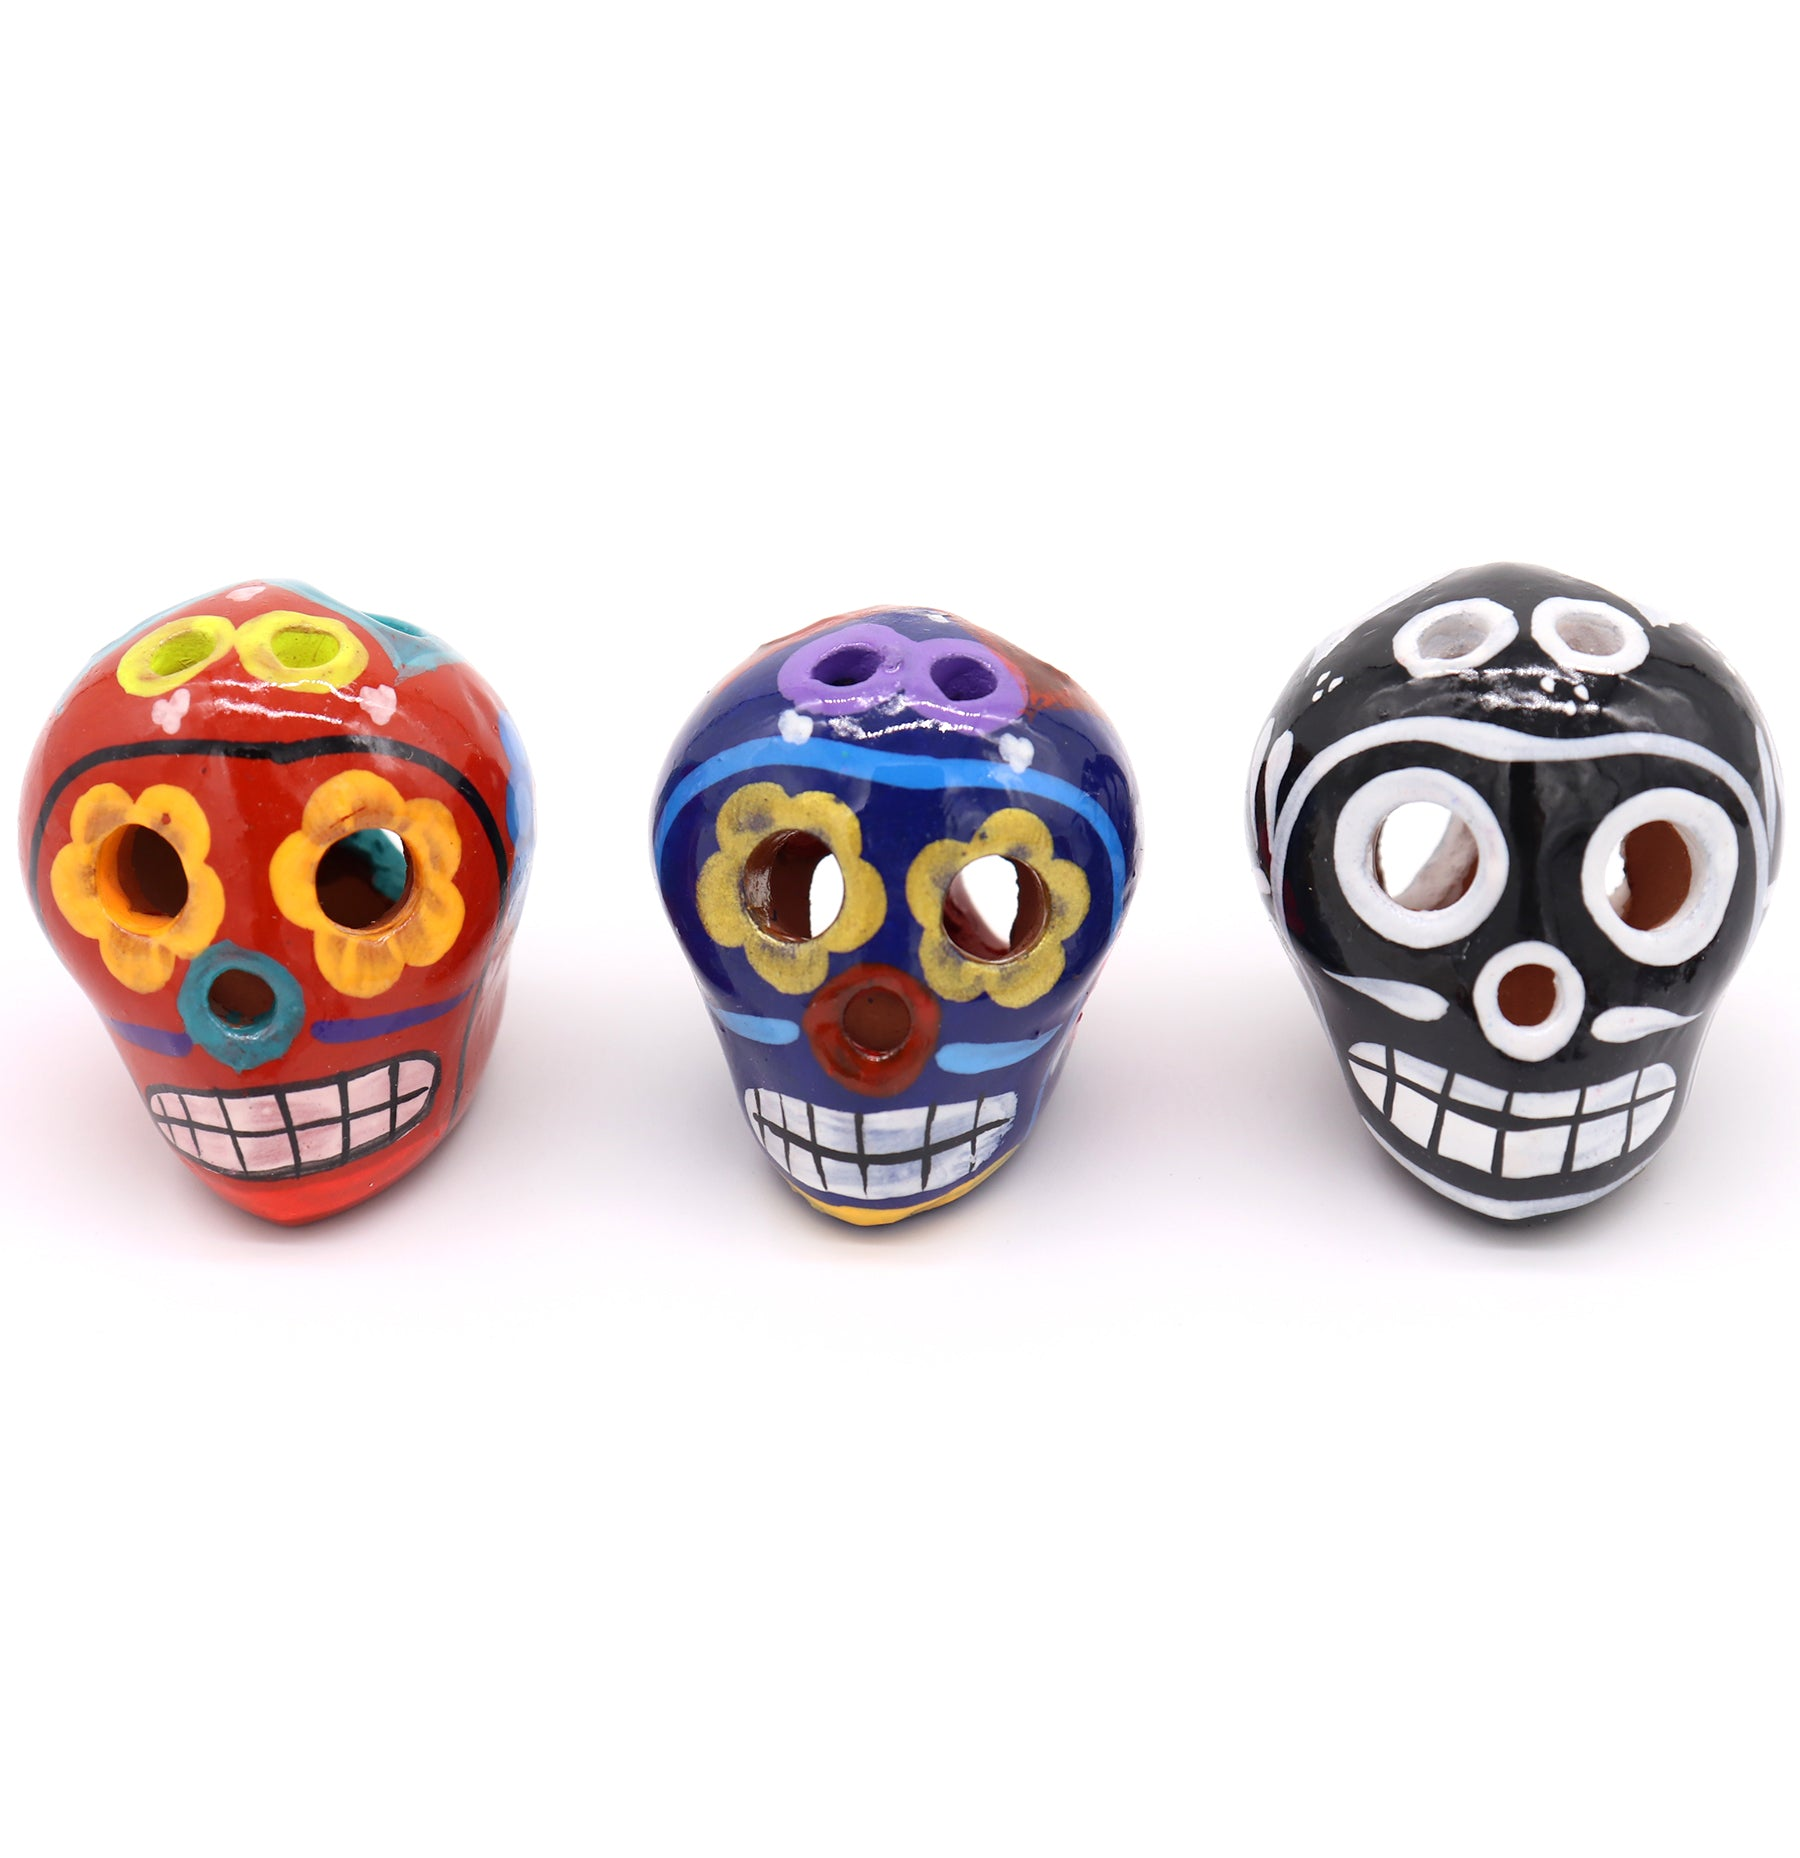 Sugar Skulls are handcrafted and hand painted with unique colorful features from Mexico. They come in sets of three, painted differently. First features an orange skull with flower eyes, teal flower on back and huge smile on front. Second with purple colors and flower. Third black and white.